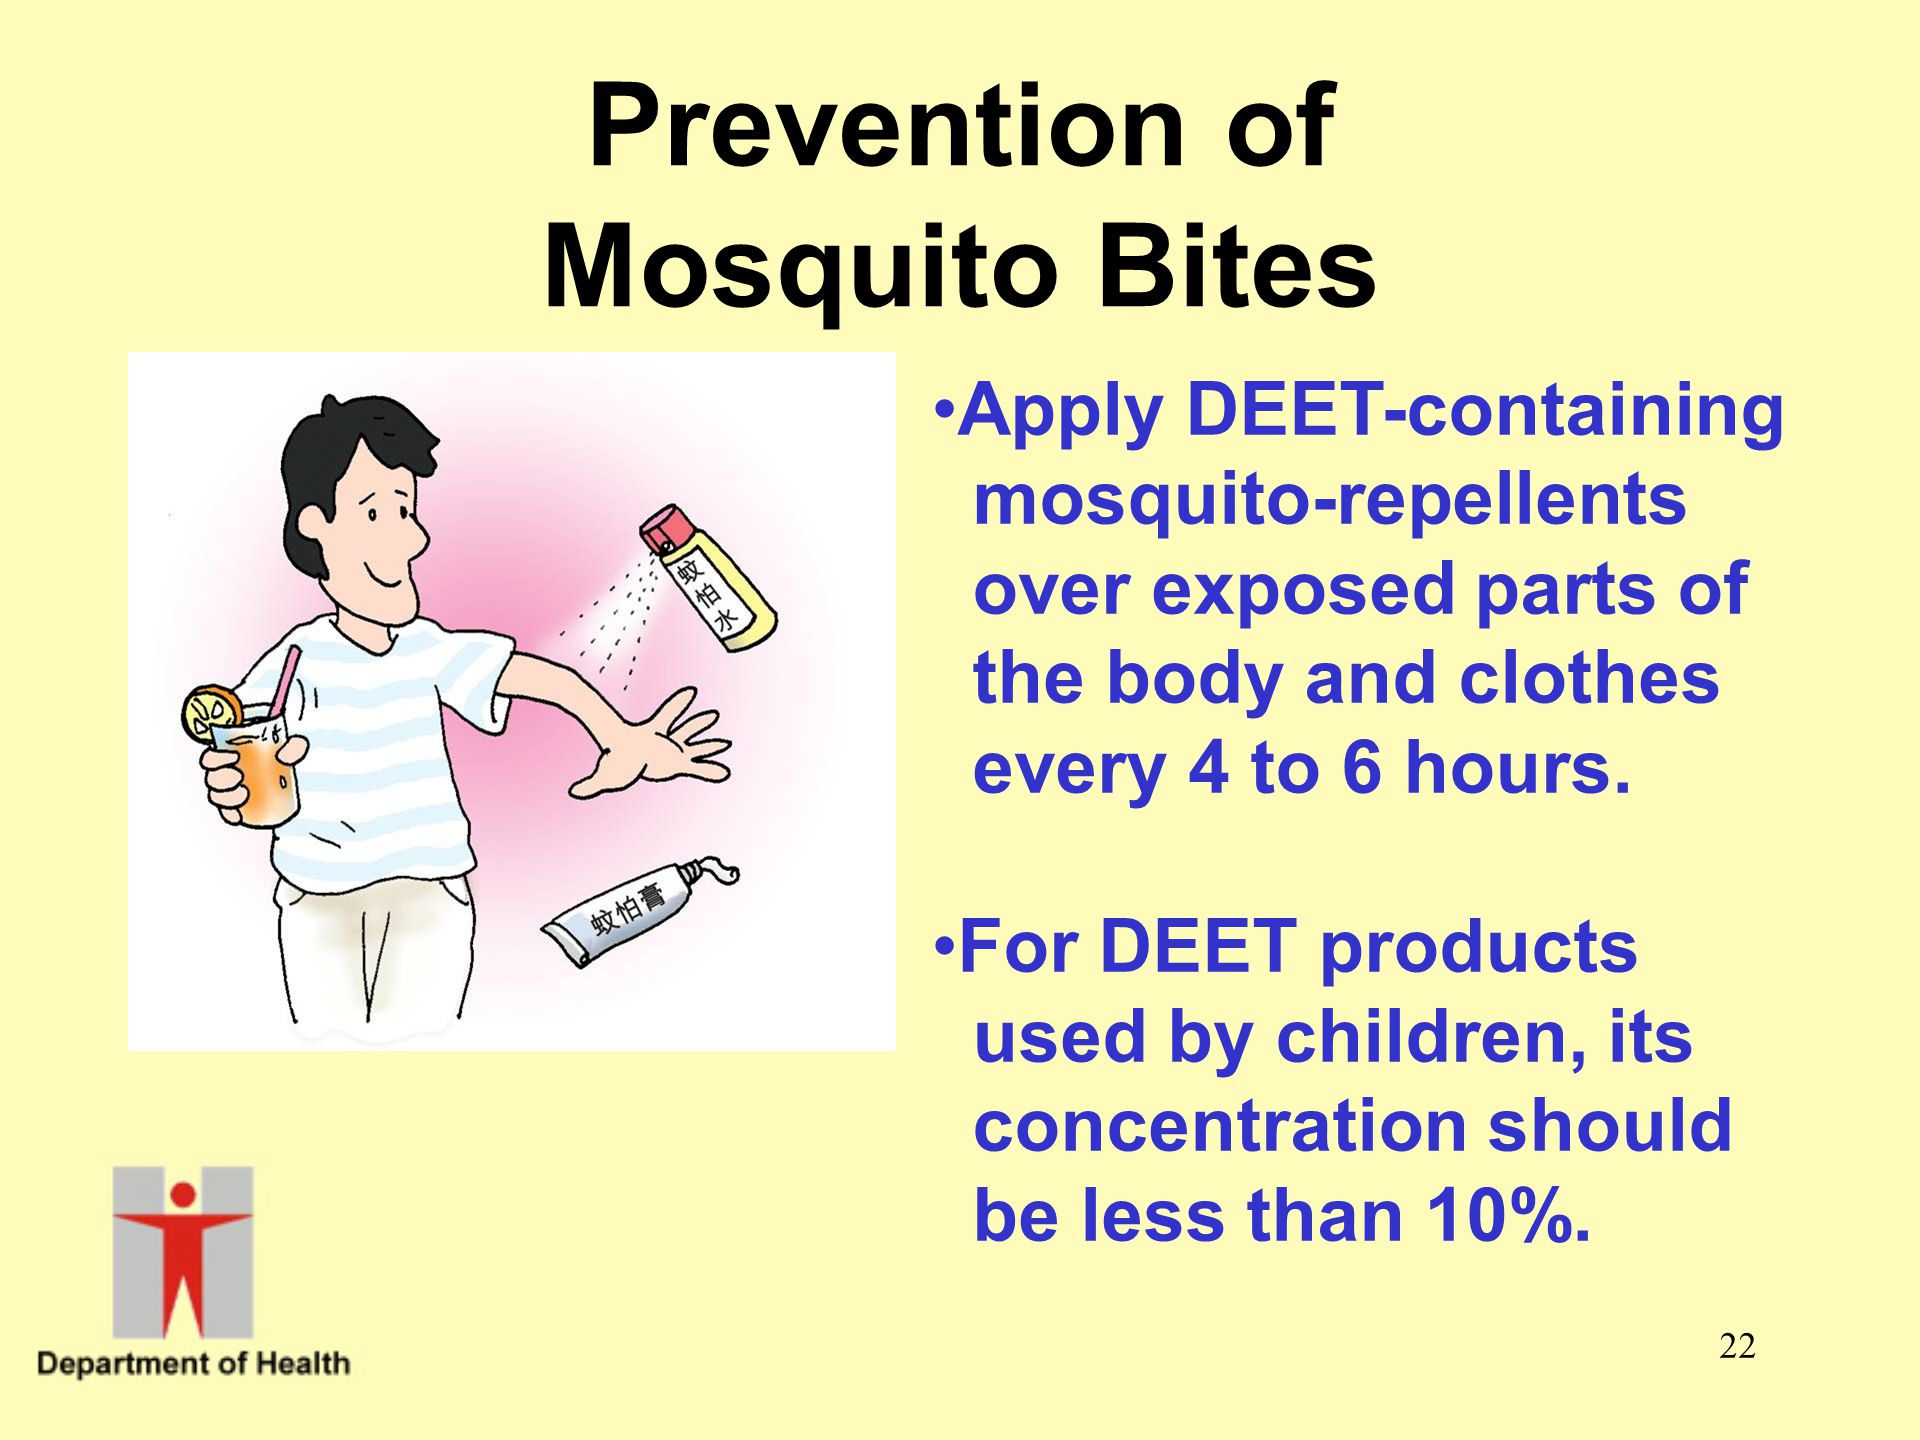 Prevention of Mosquito Bites